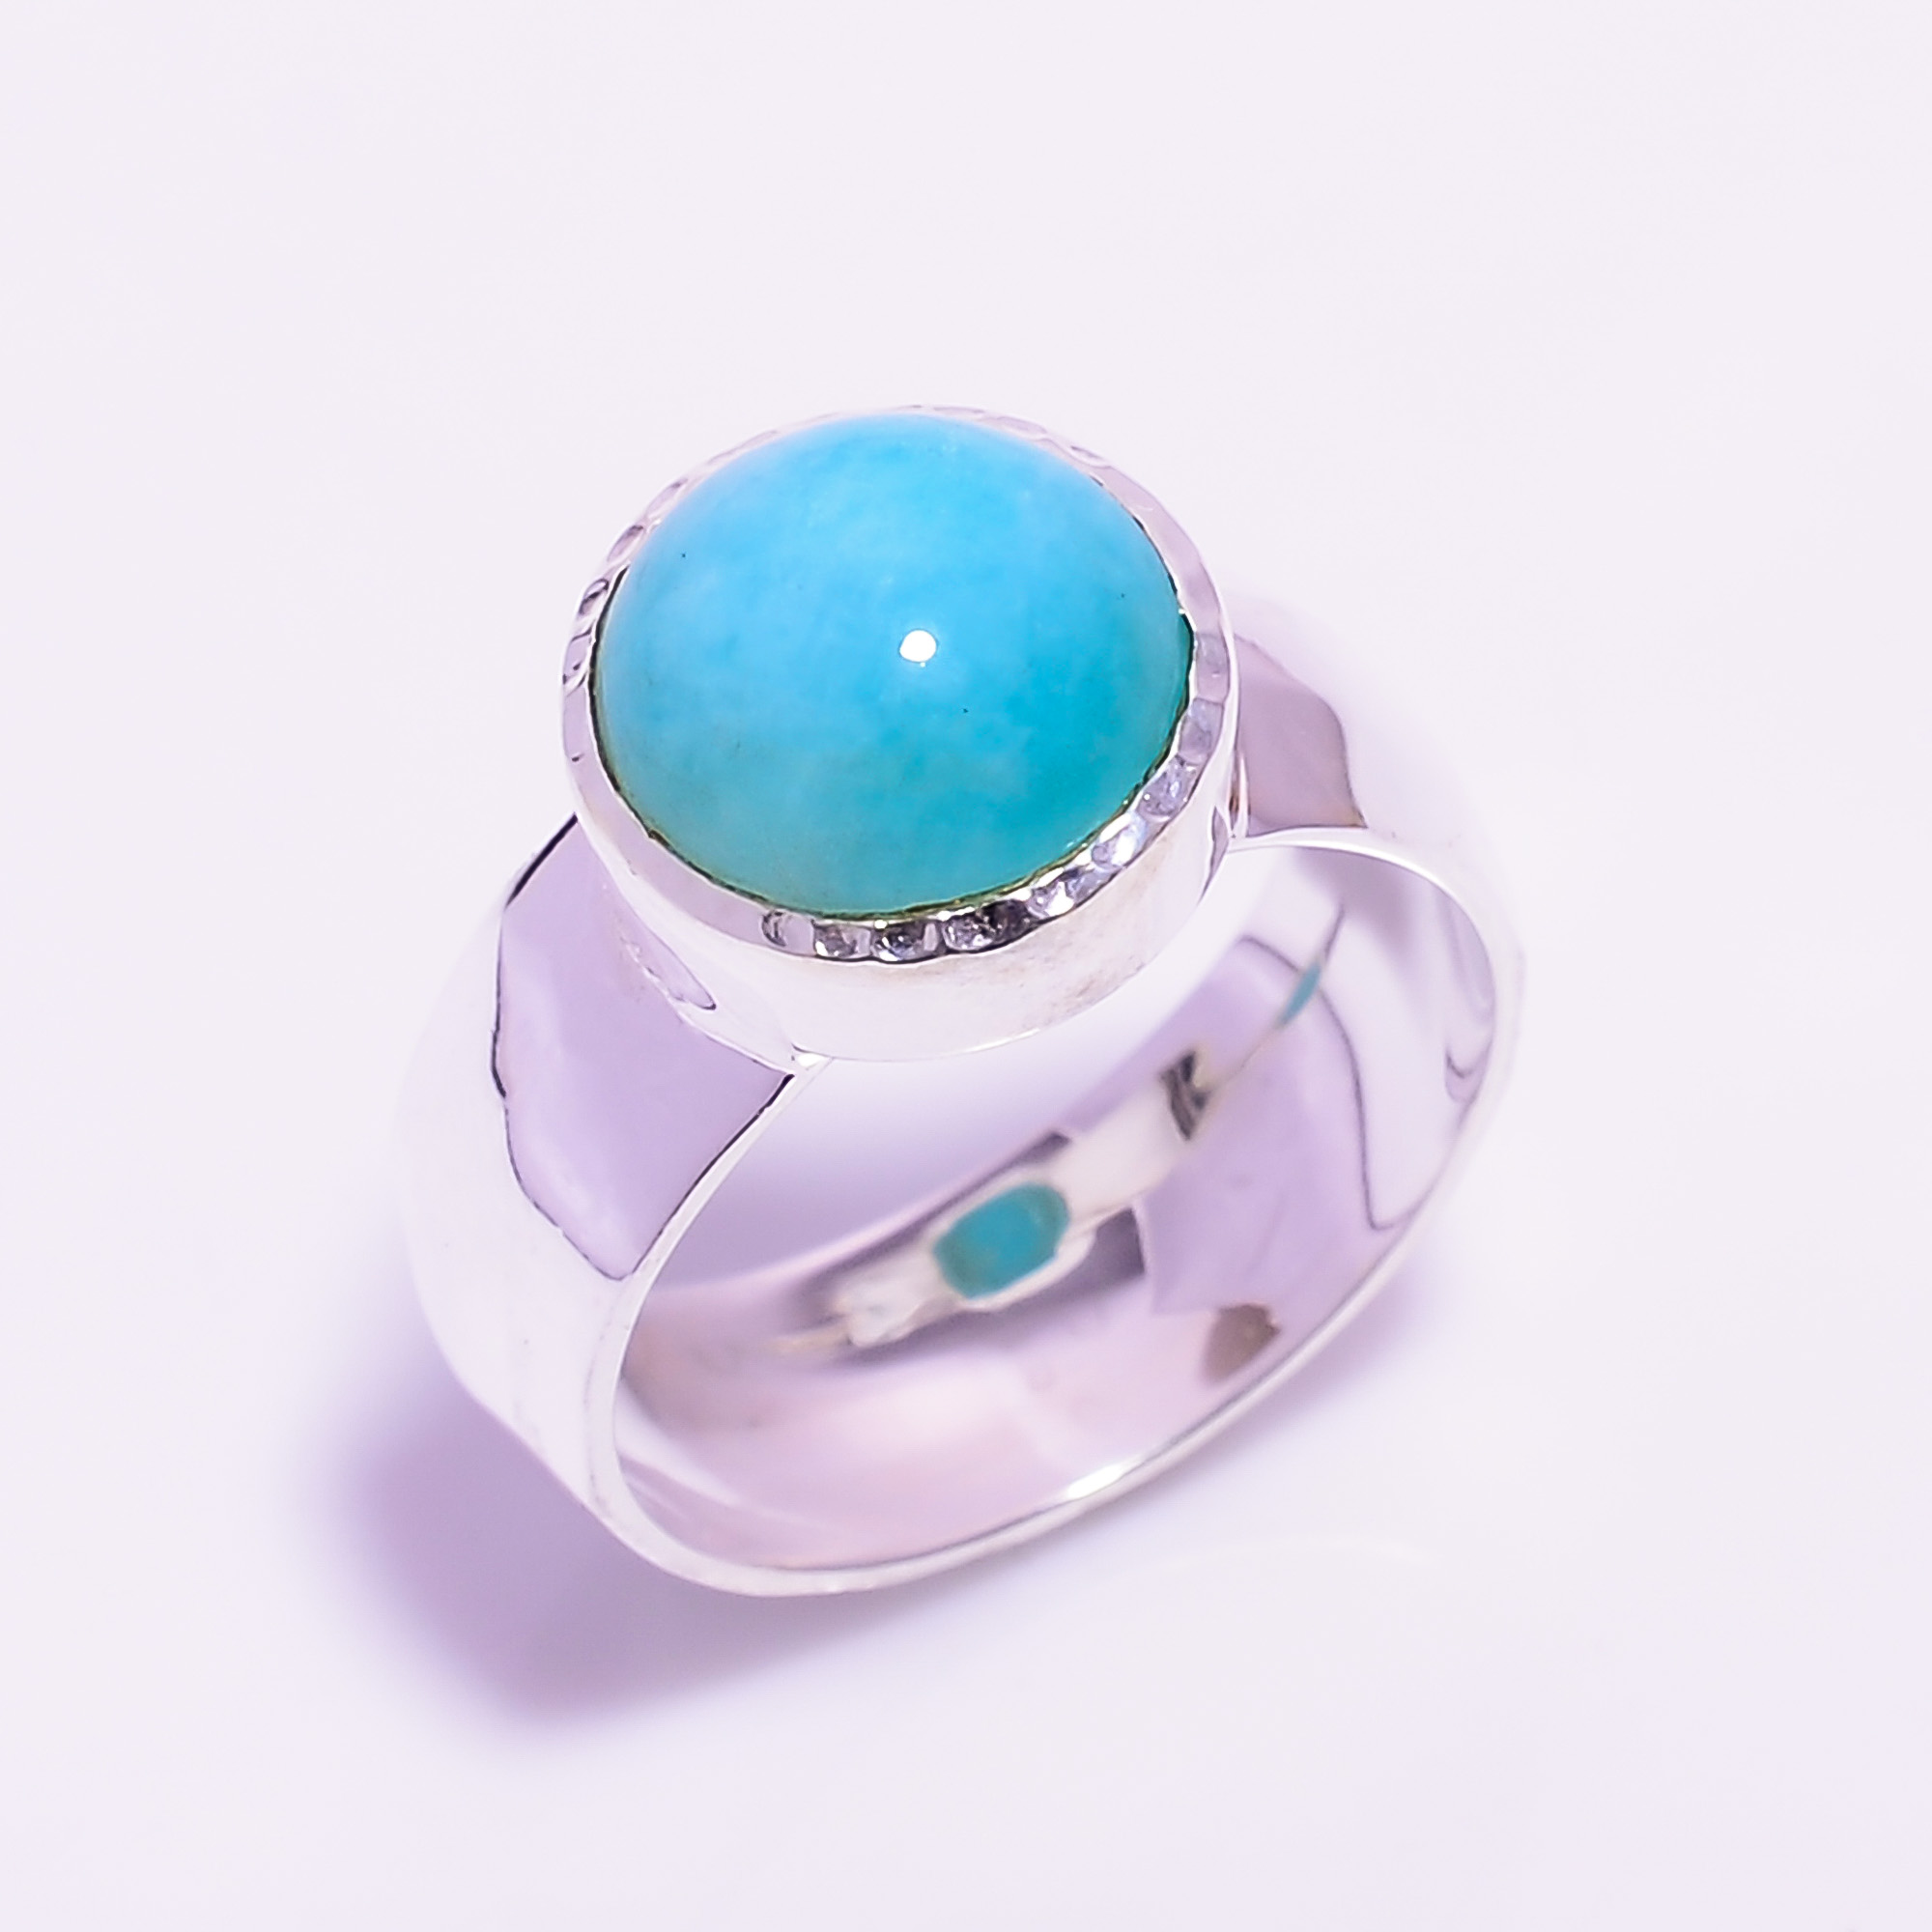 Amazonite Gemstone 925 Sterling Silver Hammered Ring Size US 6.75